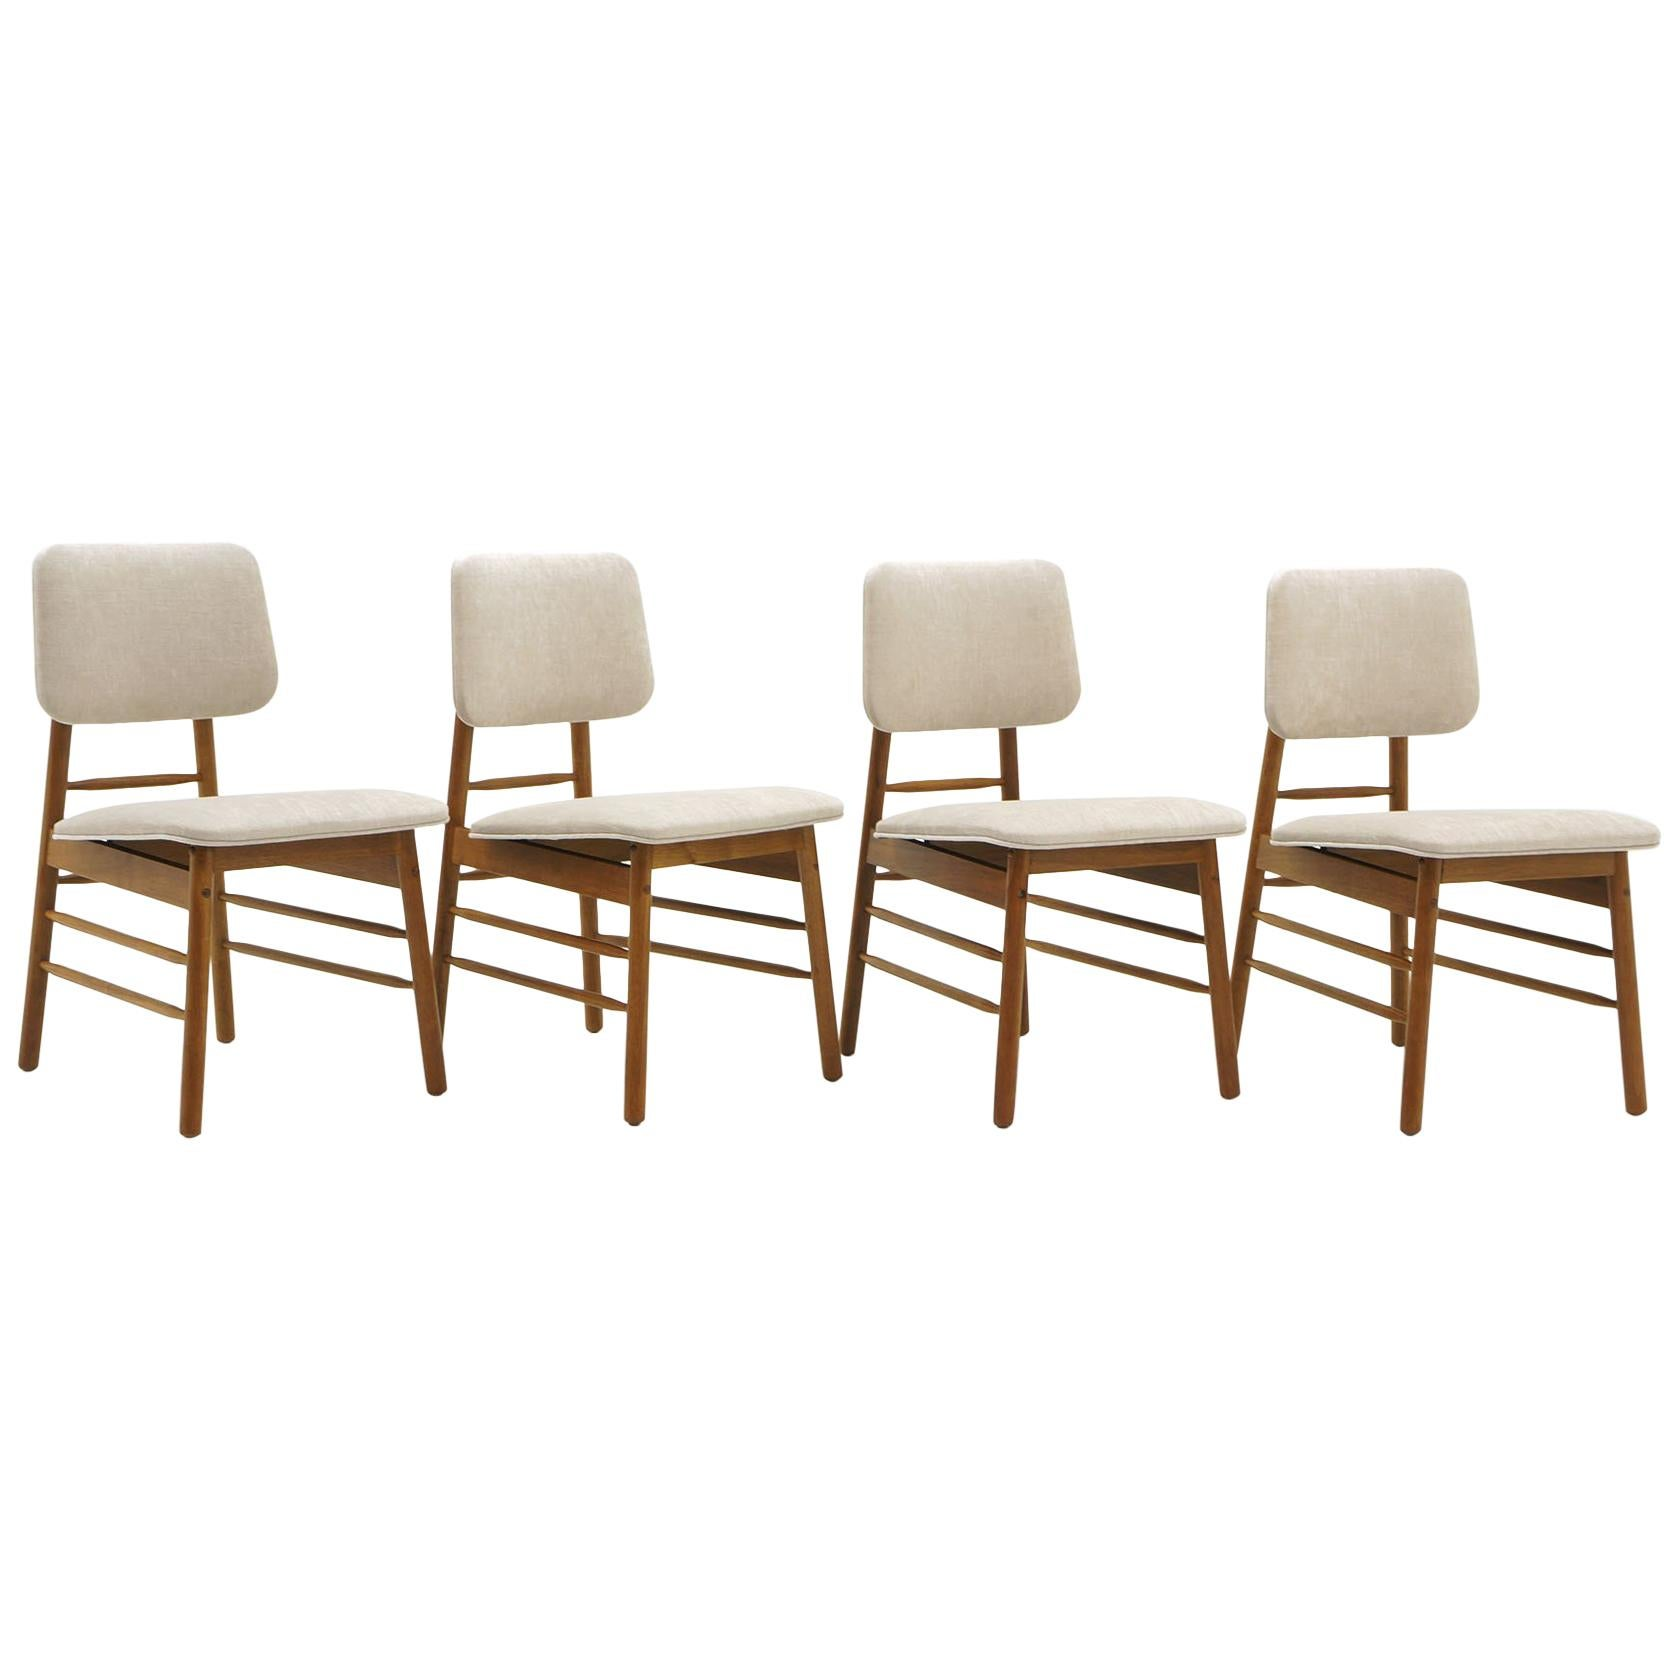 Set of Four Dining Chairs by Greta Grossman, New Knoll Upholstery, Excellent